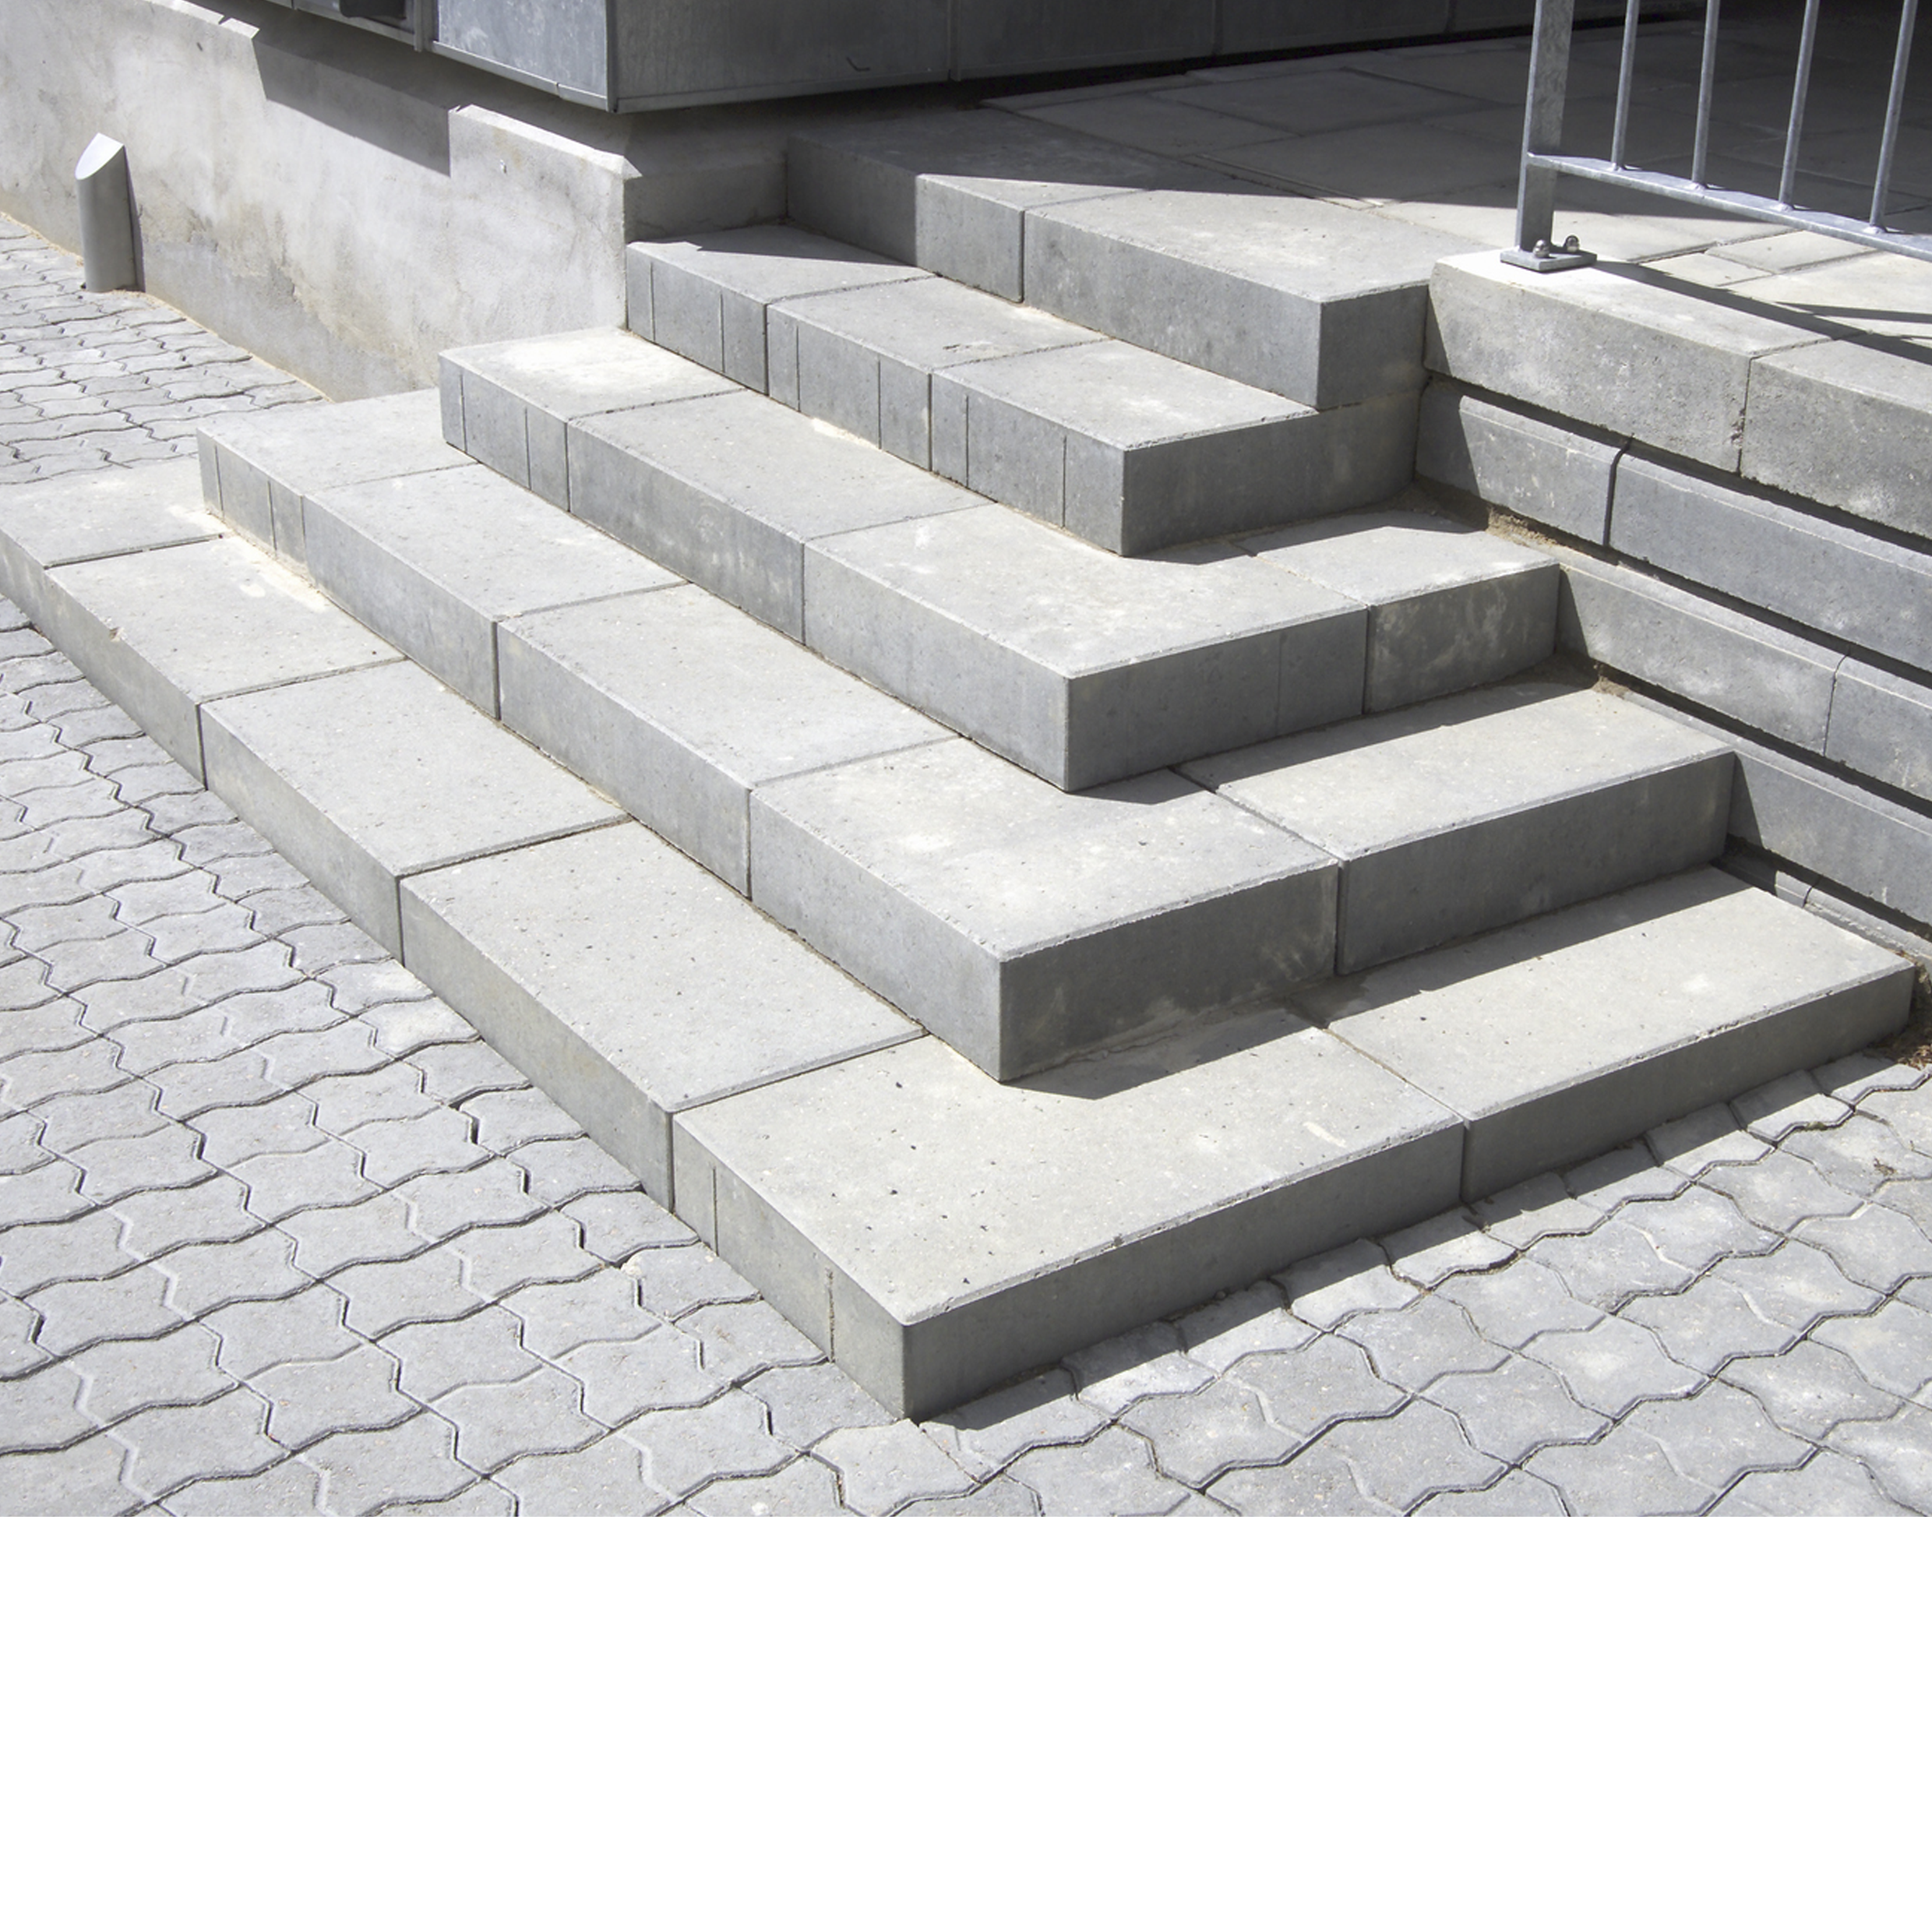 Picture of: Trappetrin Kob Beton Trappetrin Lave Priser Hos Xl Byg